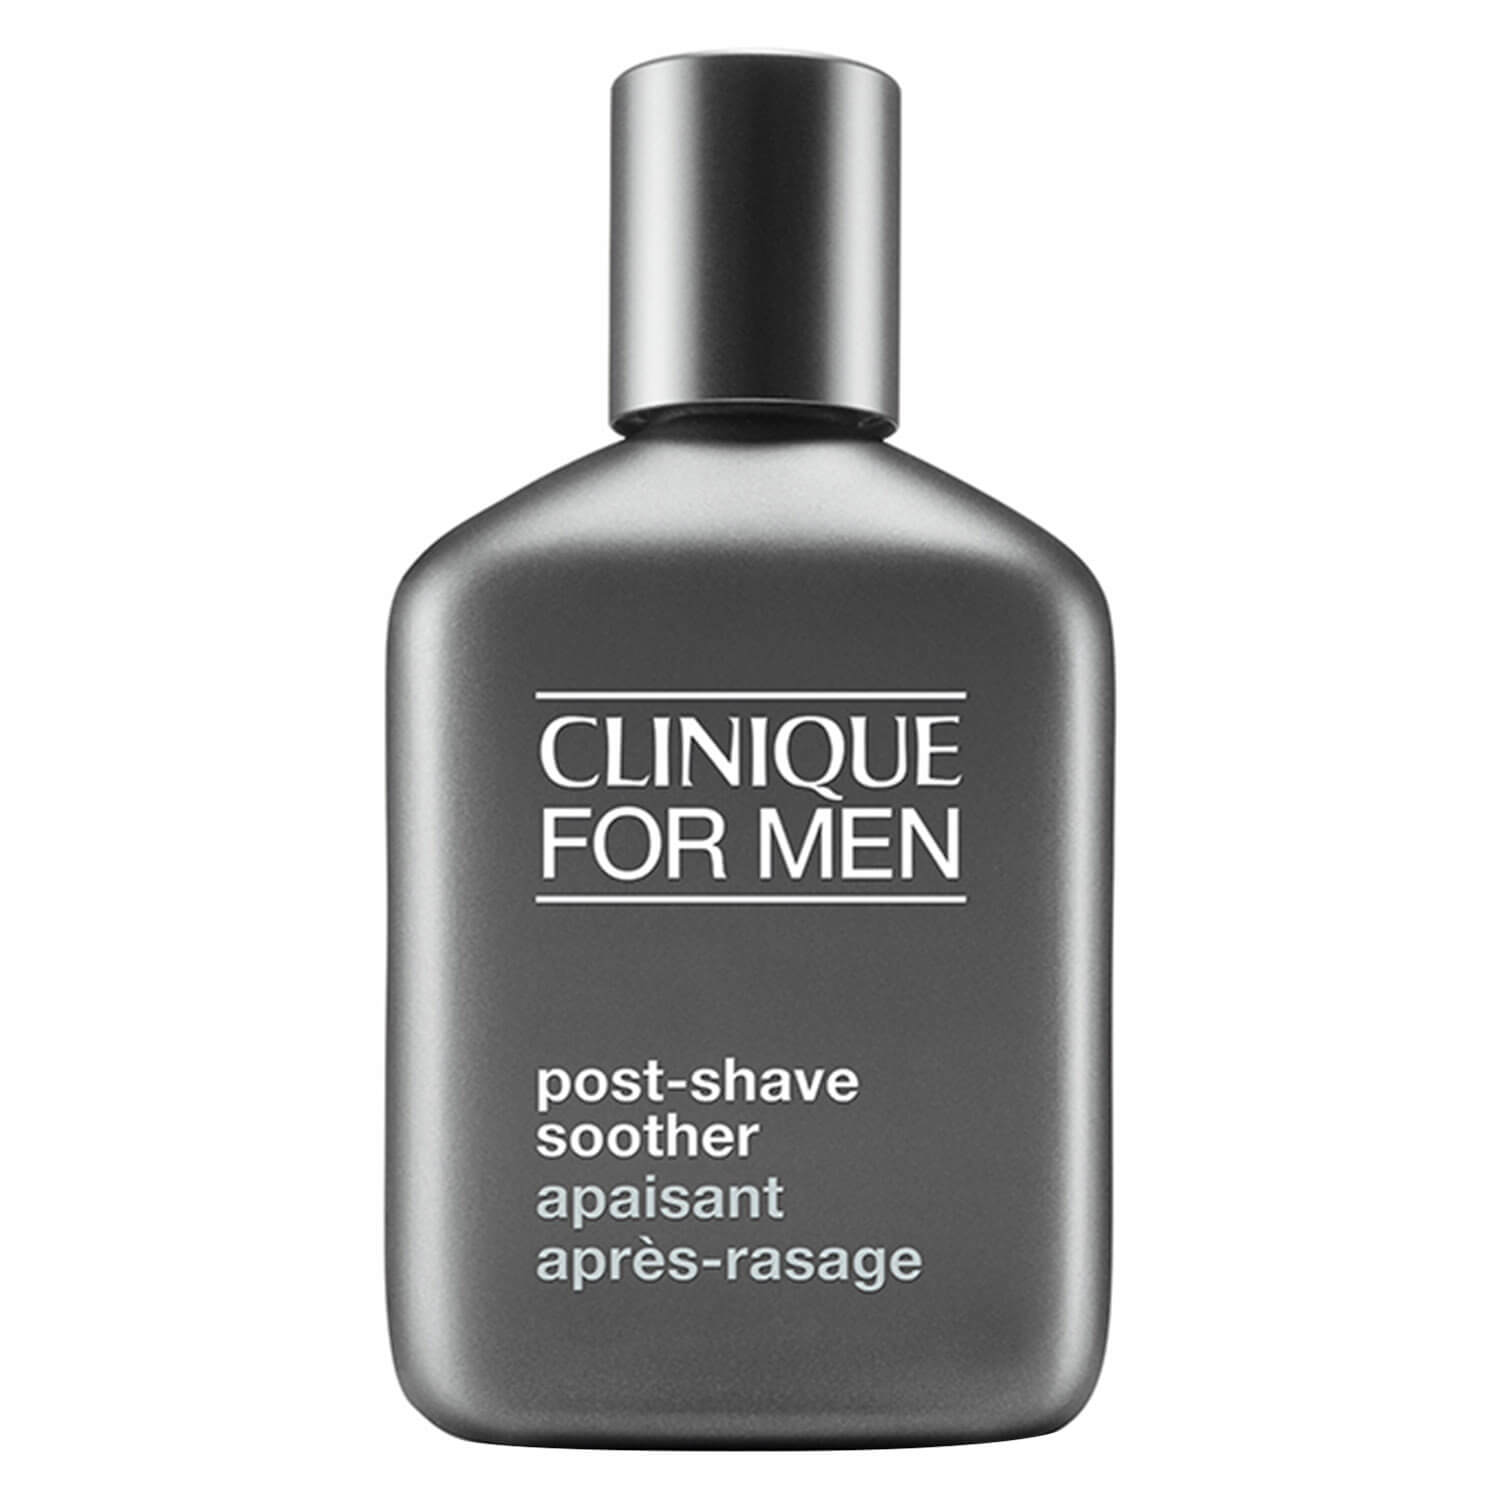 Clinique For Men - Post Shave Soother - 75ml